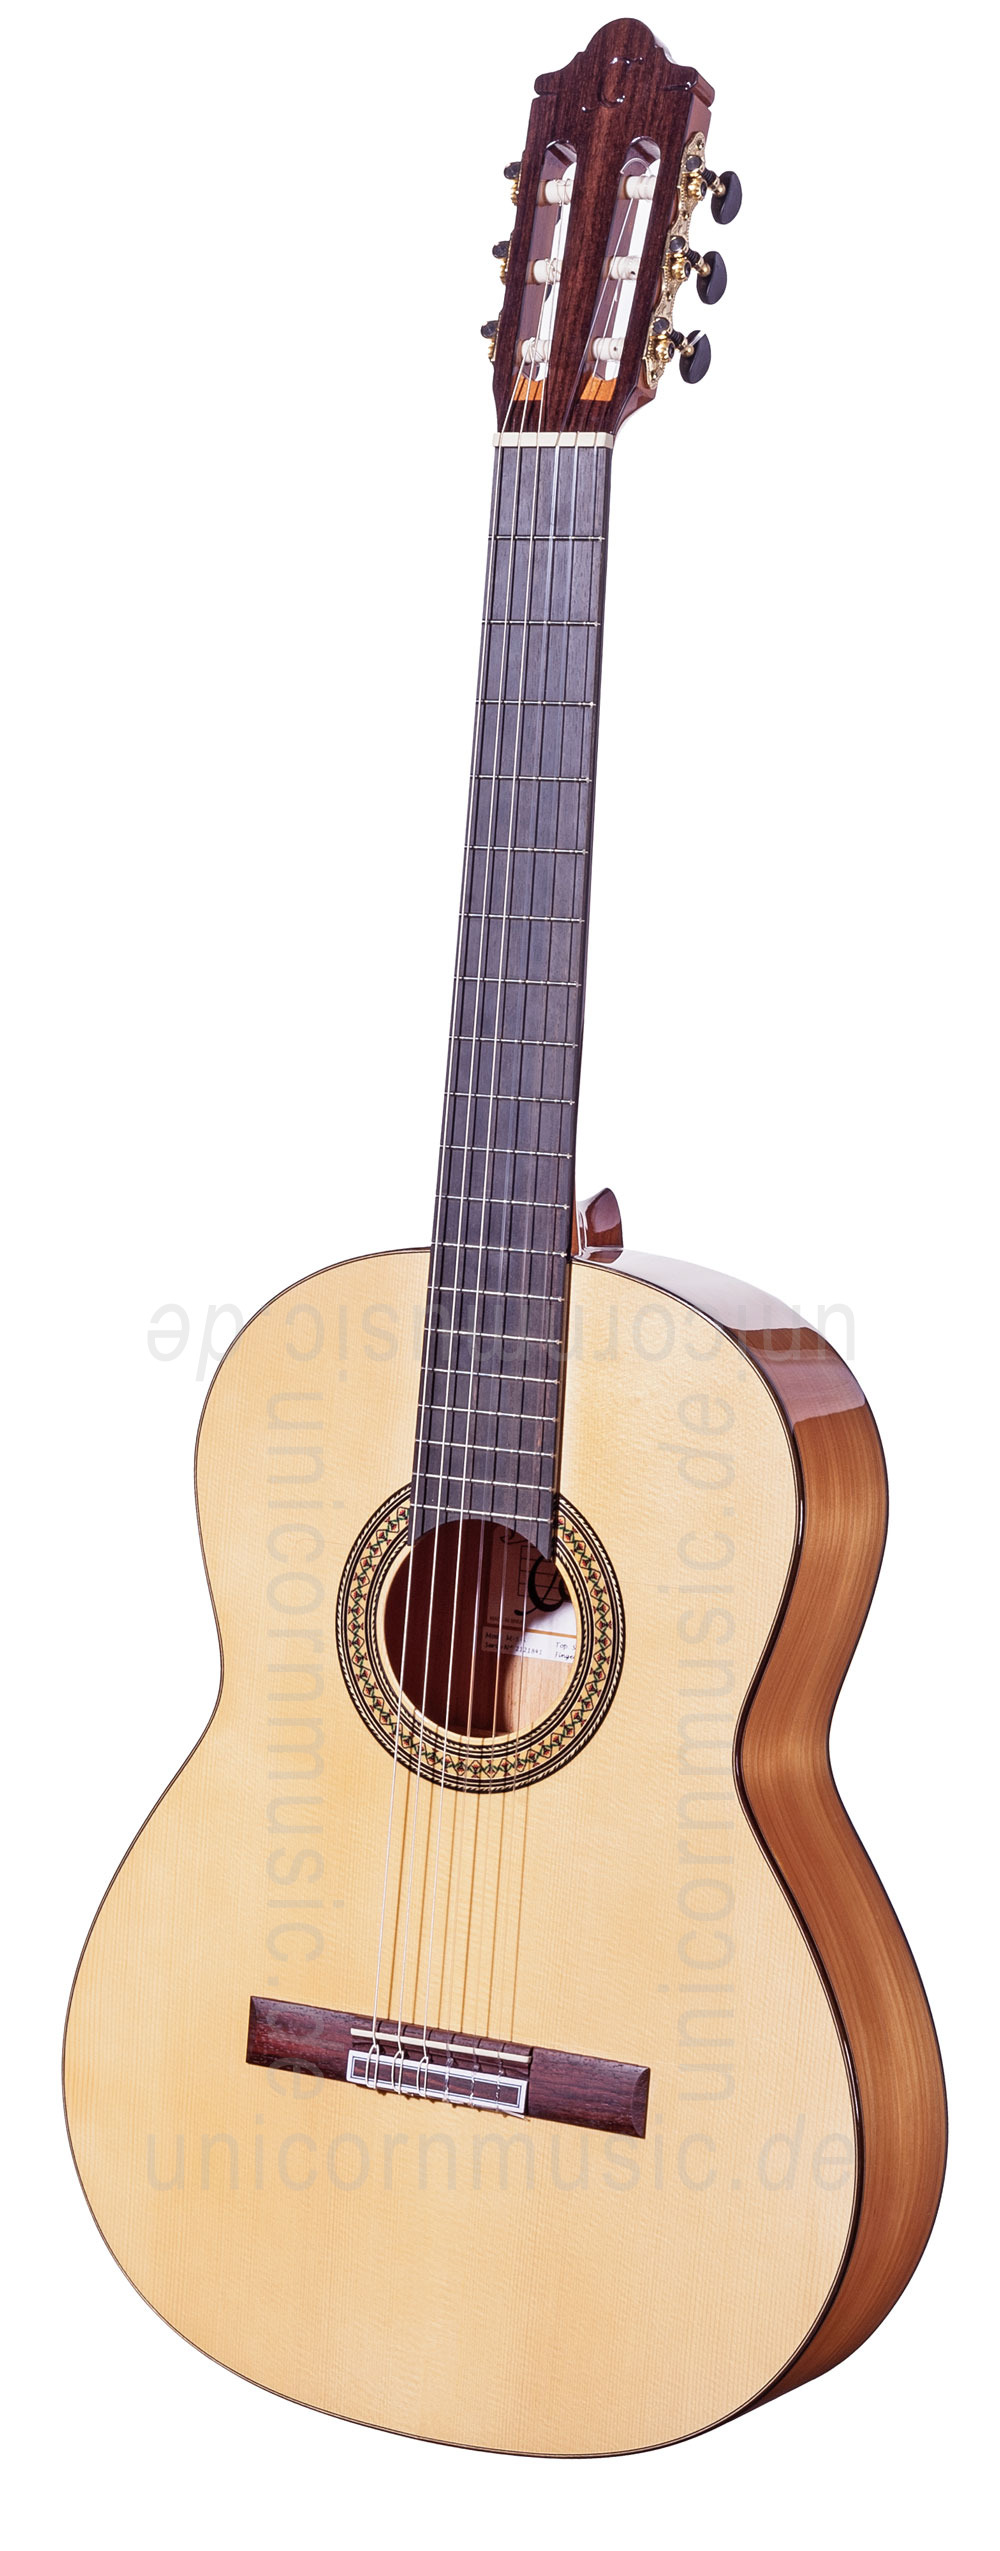 to article description / price Spanish Flamenco Guitar CAMPS M5-S (blanca) - solid spruce top